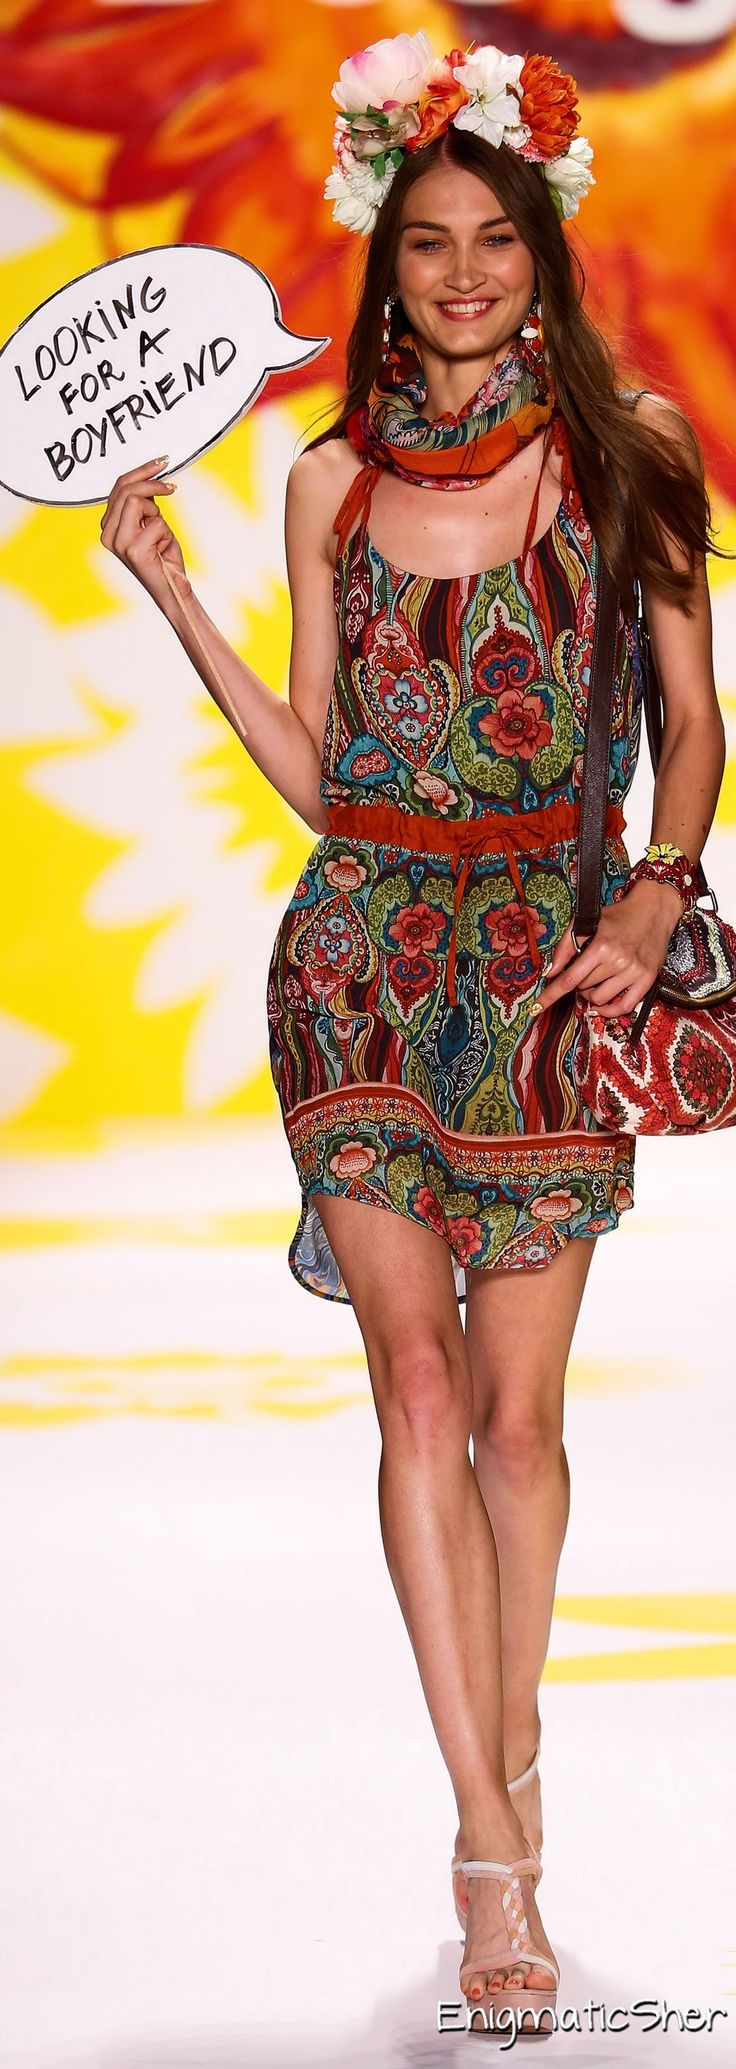 Desigual Spring Summer 2015 Ready-To-Wear. This is cute even with the flower crown thing. The sign is cute, too! Lol ha ha ;)